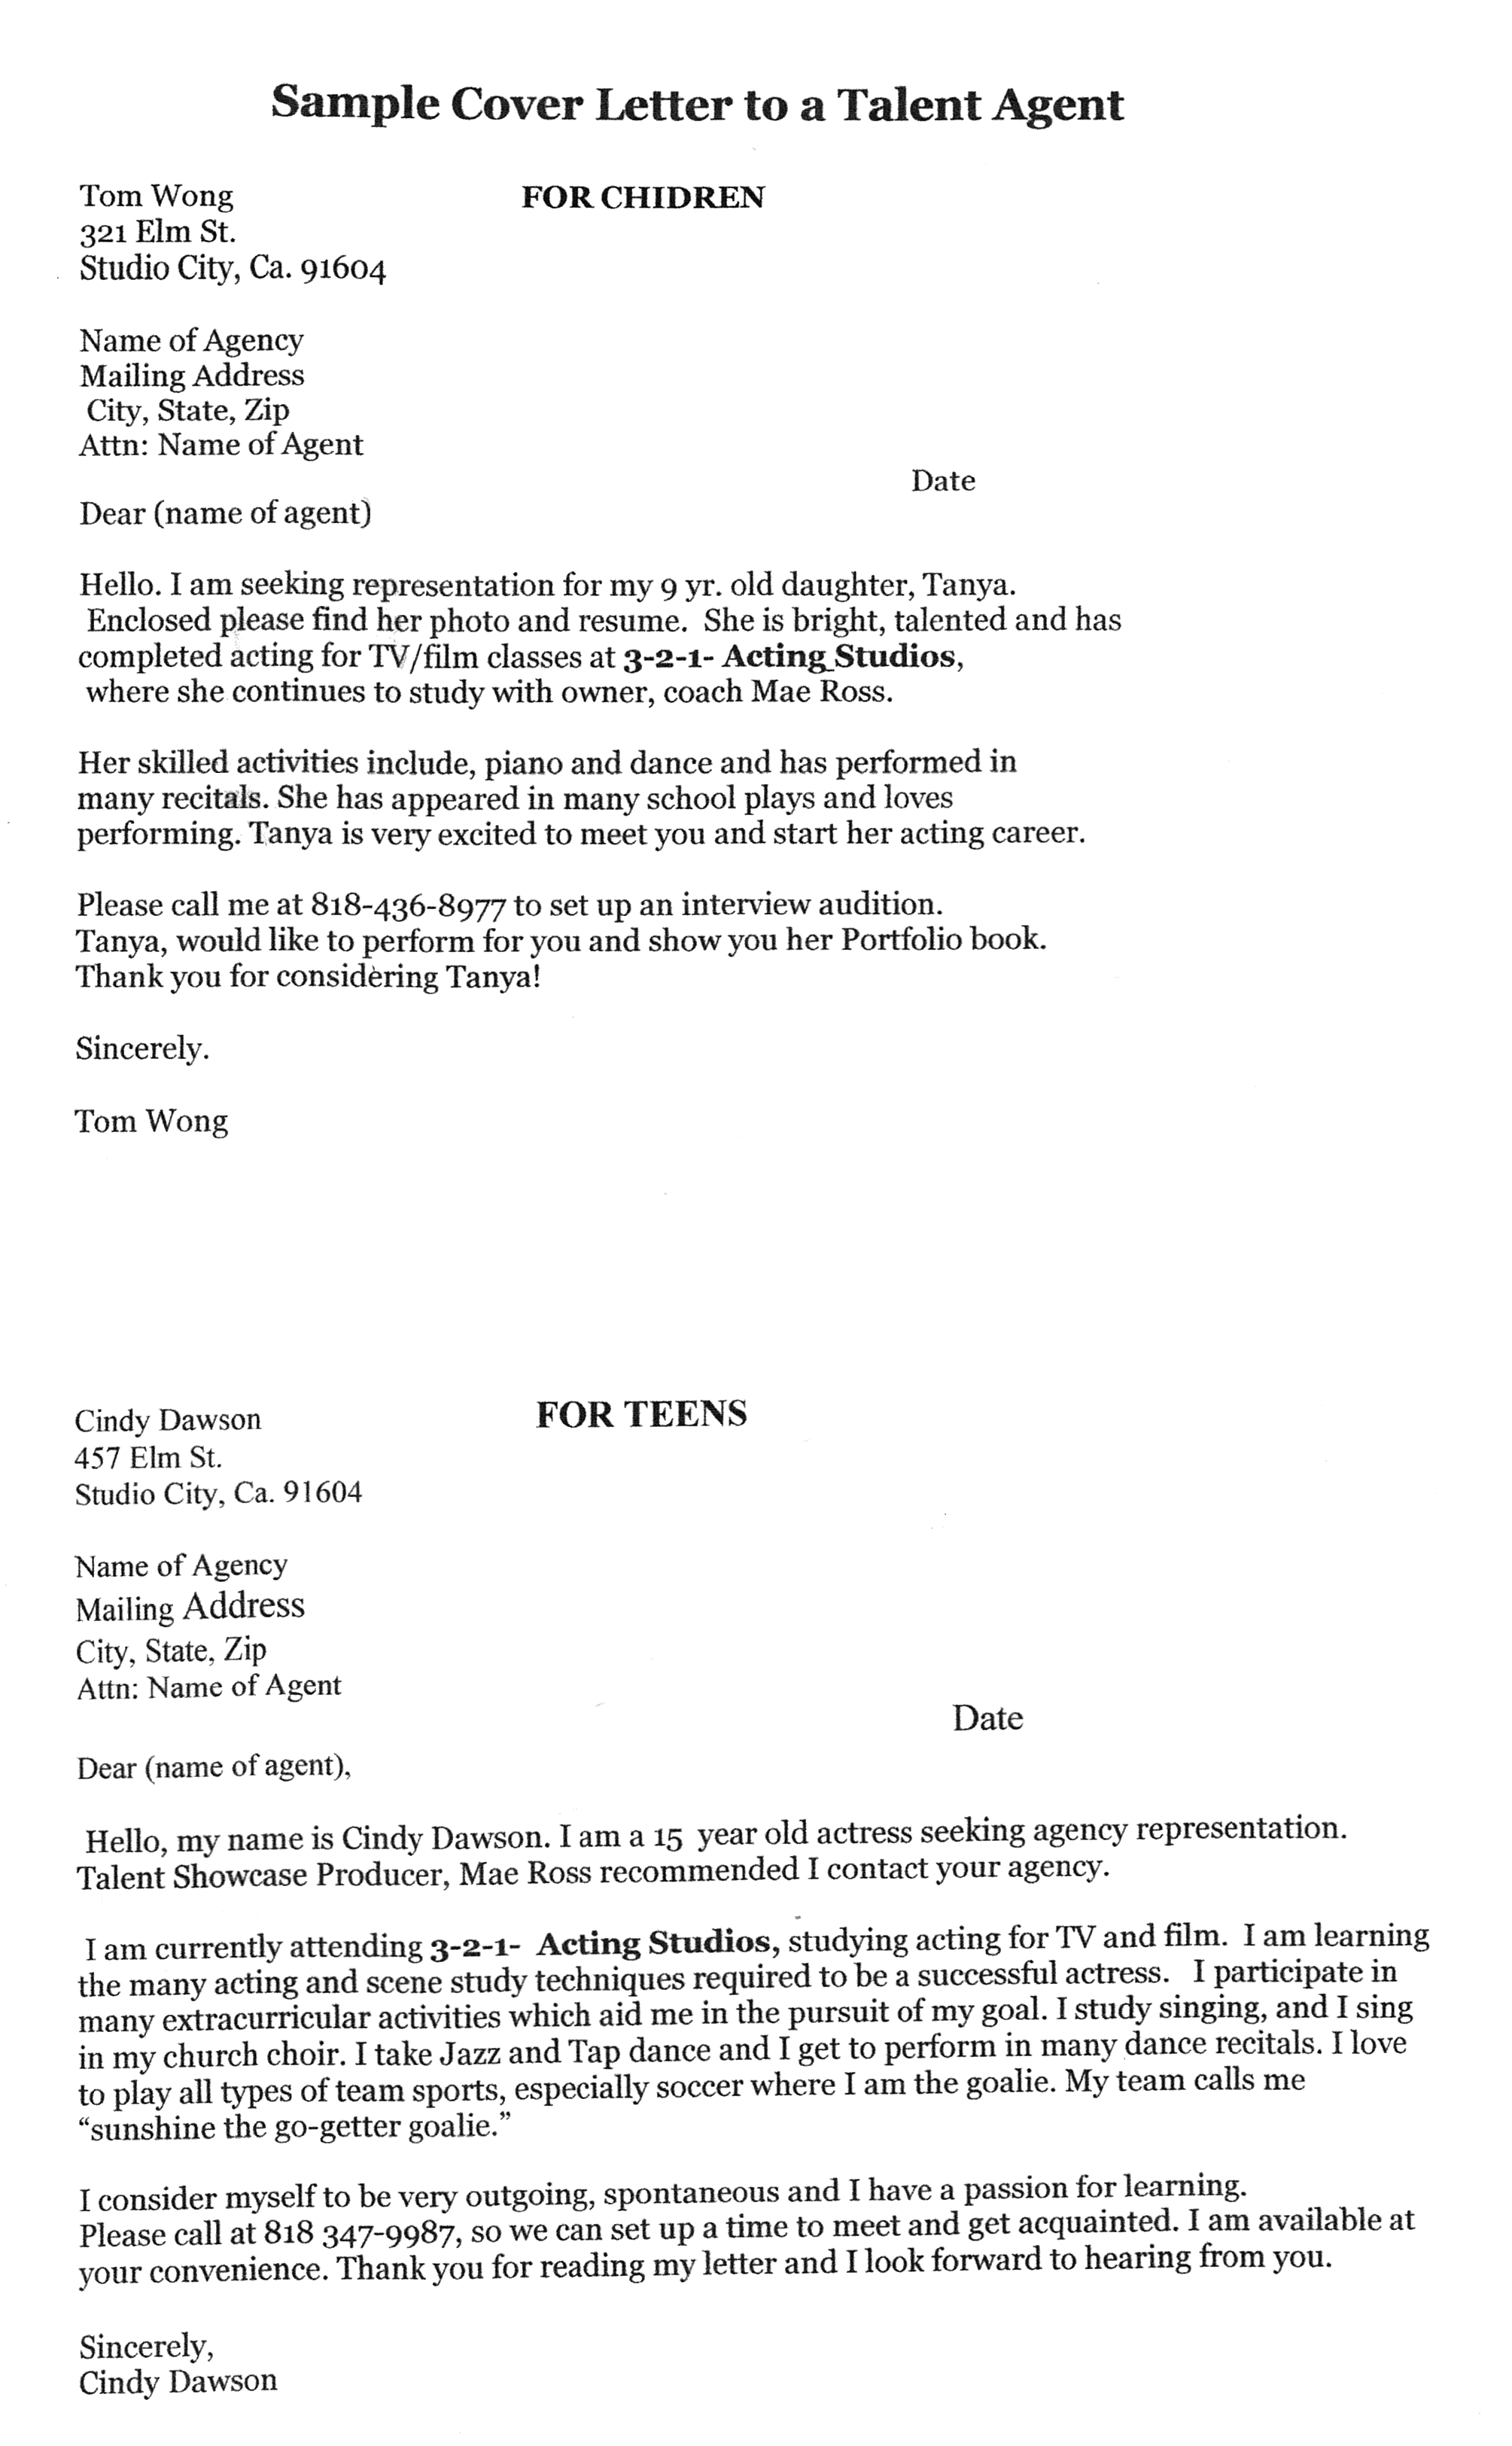 Sample cover letter for voice over image 7